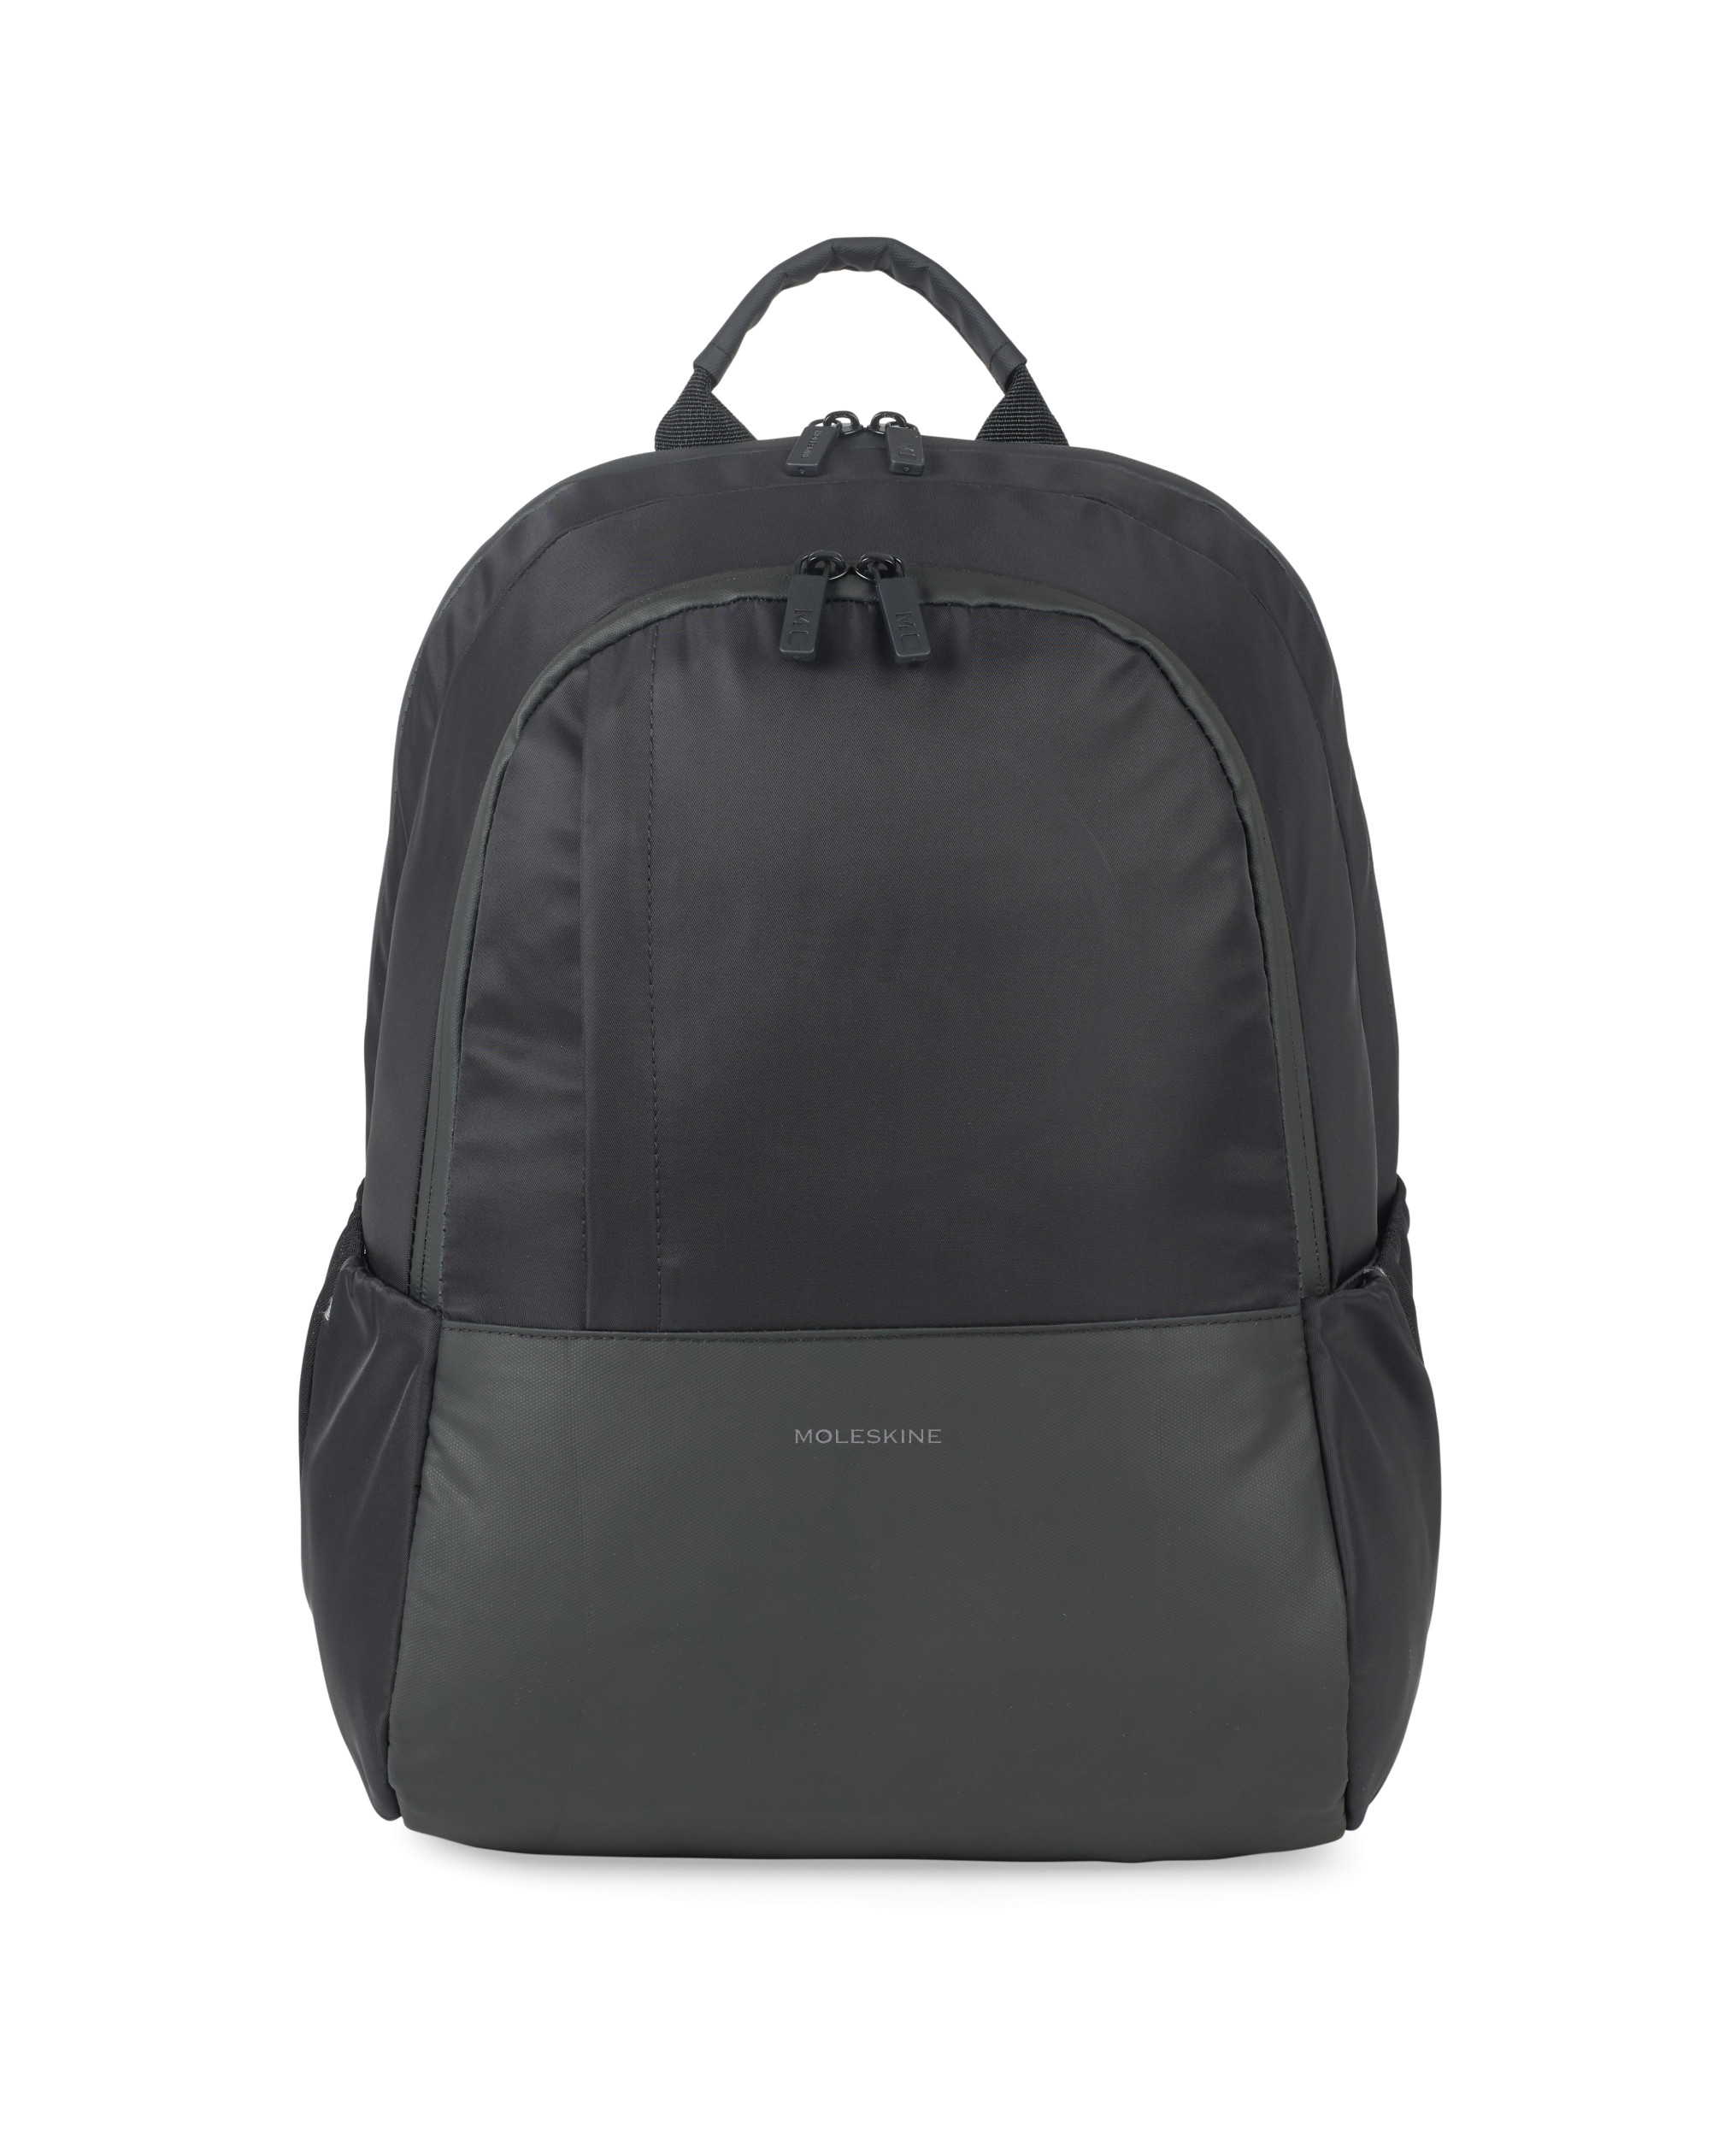 Moleskine 100085-001 - Business Backpack